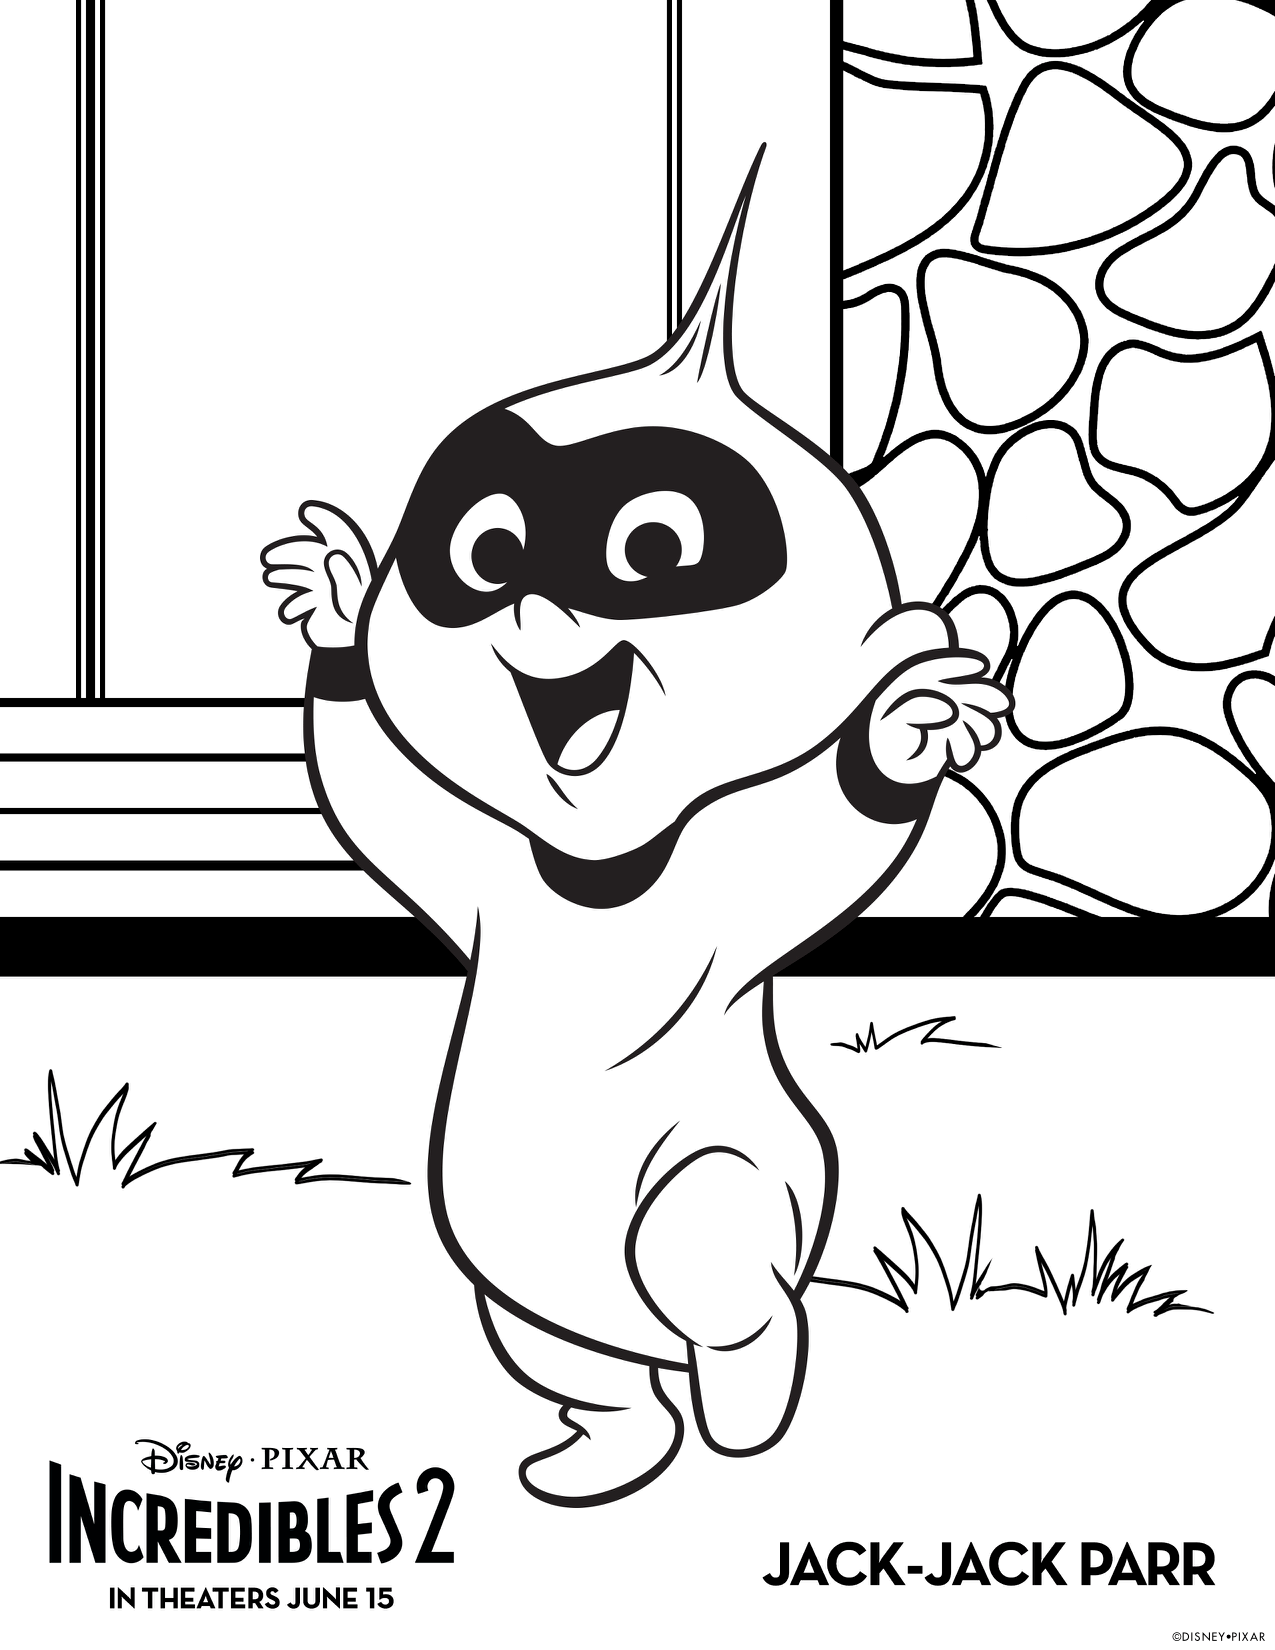 Incredibles 2 jack jack parr the incredibles 2 kids coloring pages